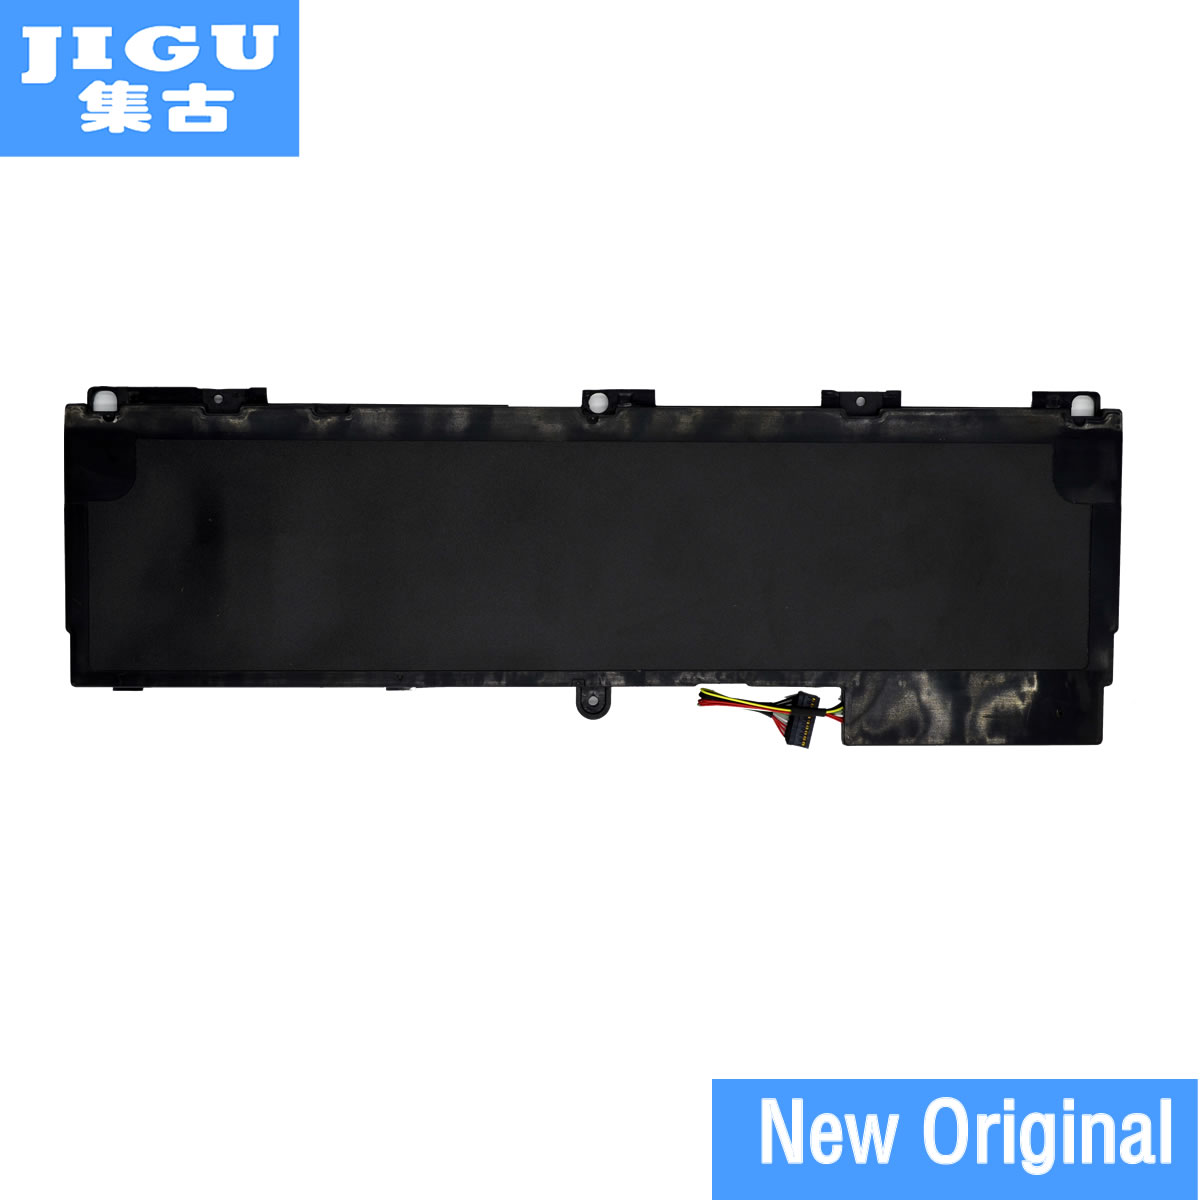 JIGU AA-PLAN6AR Original Laptop Battery For SAMSUNG 900X1 900X1B-A01 900X1BA01 900X3 Series 900X3AA01 jigu laptop battery for dell 8858x 8p3yx 911md vostro 3460 3560 latitude e6120 e6420 e6520 4400mah